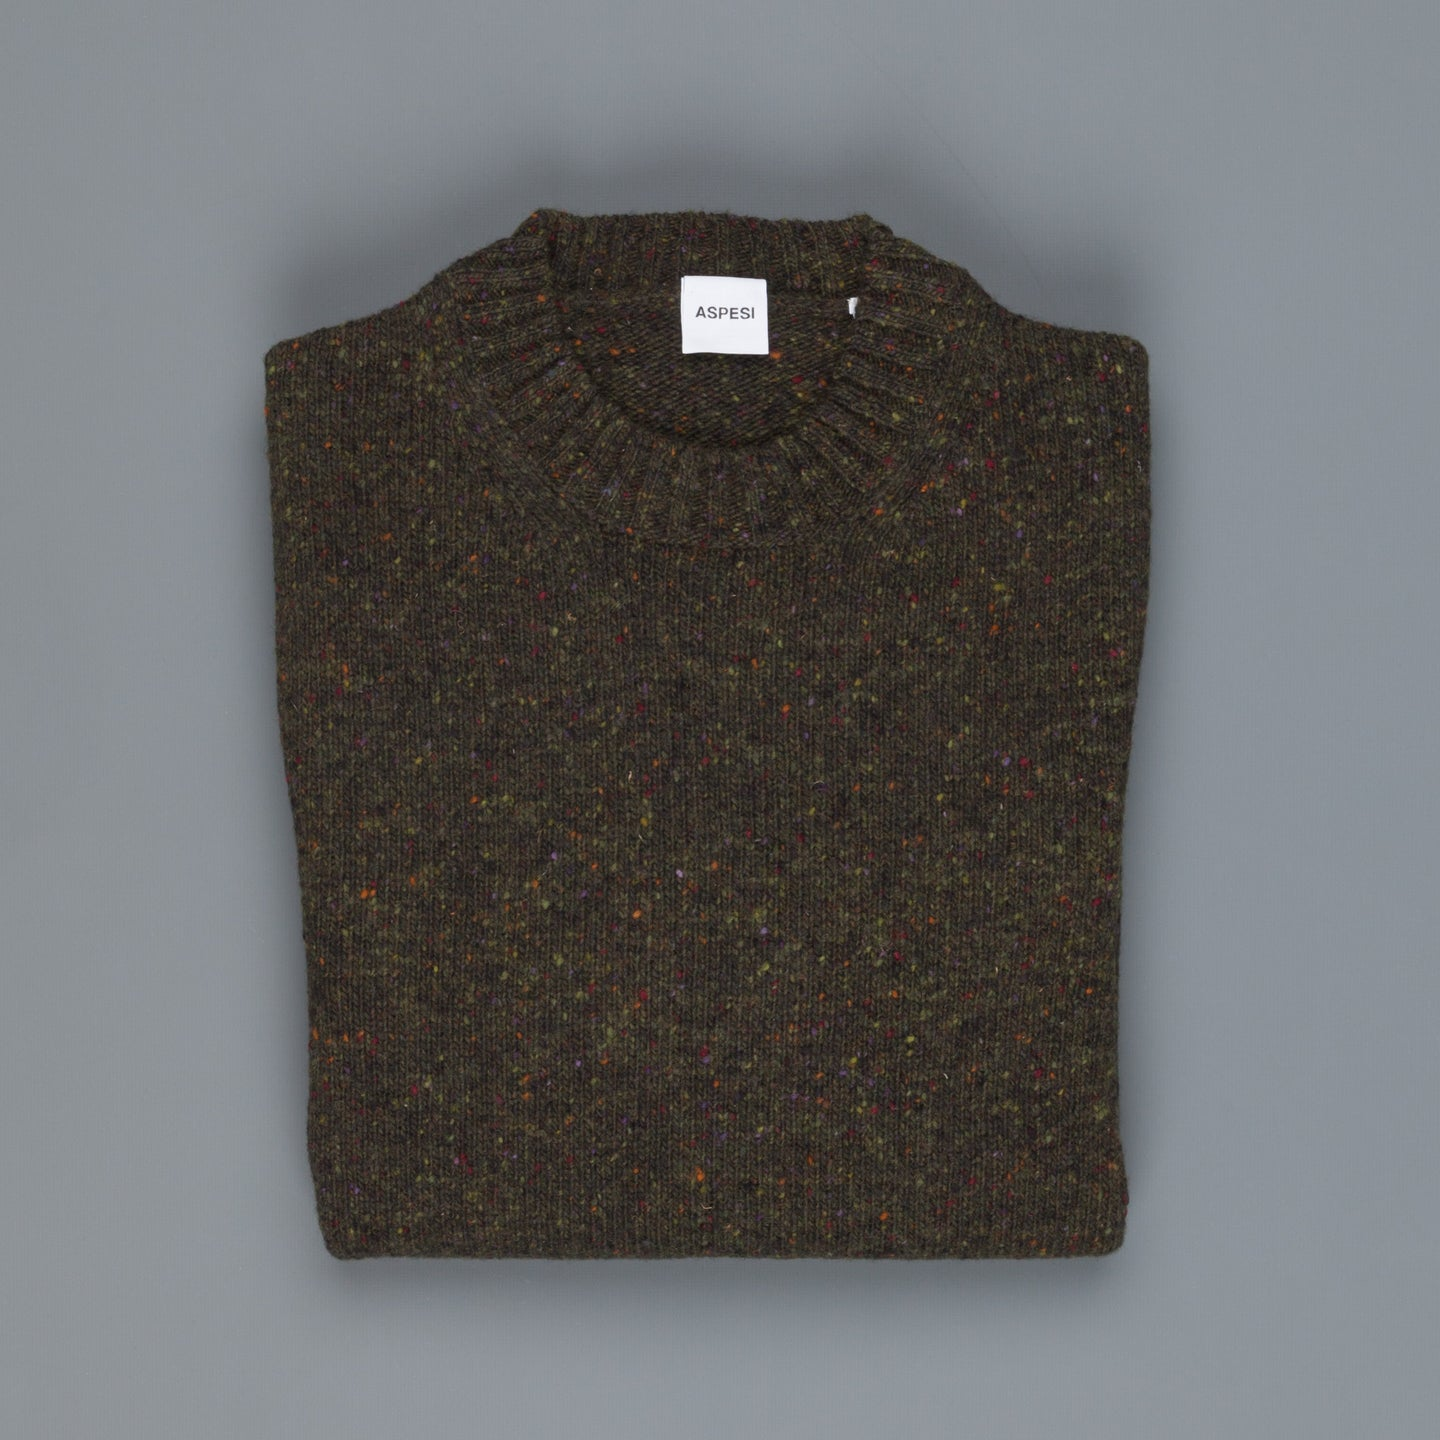 Aspesi Donegal Sweater Crew Model M183 neck dark olive